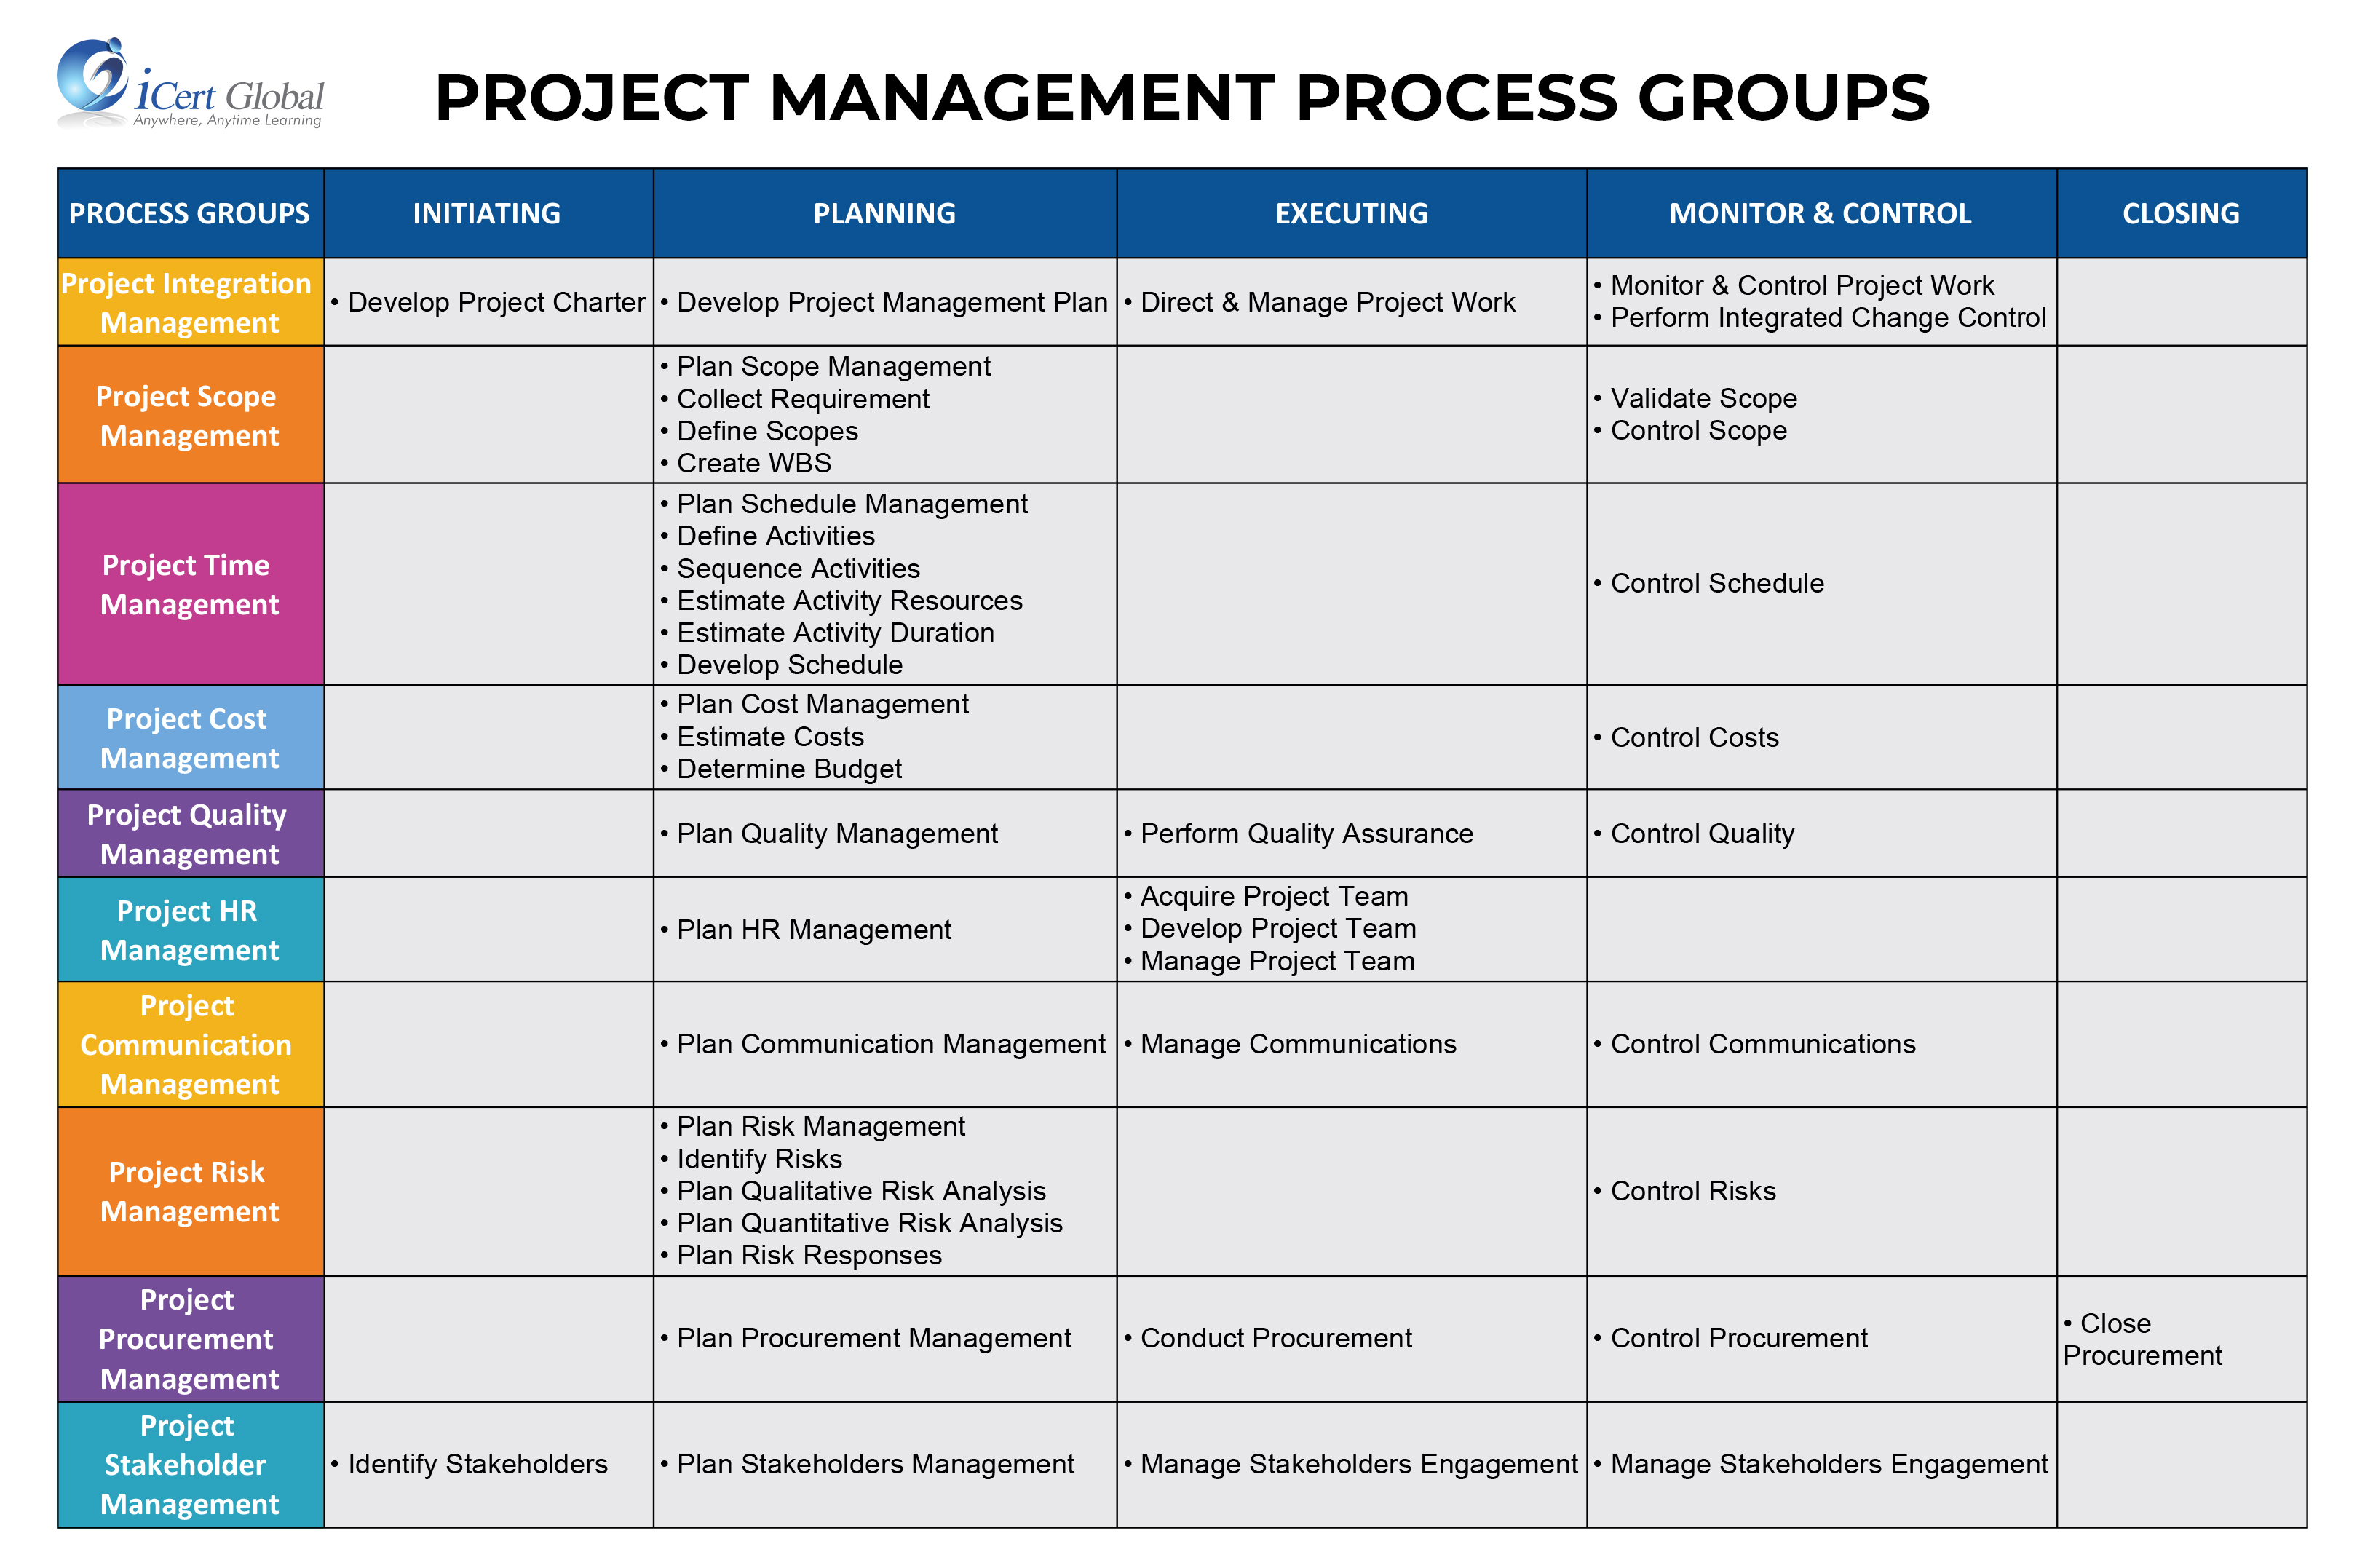 Project Management mapping